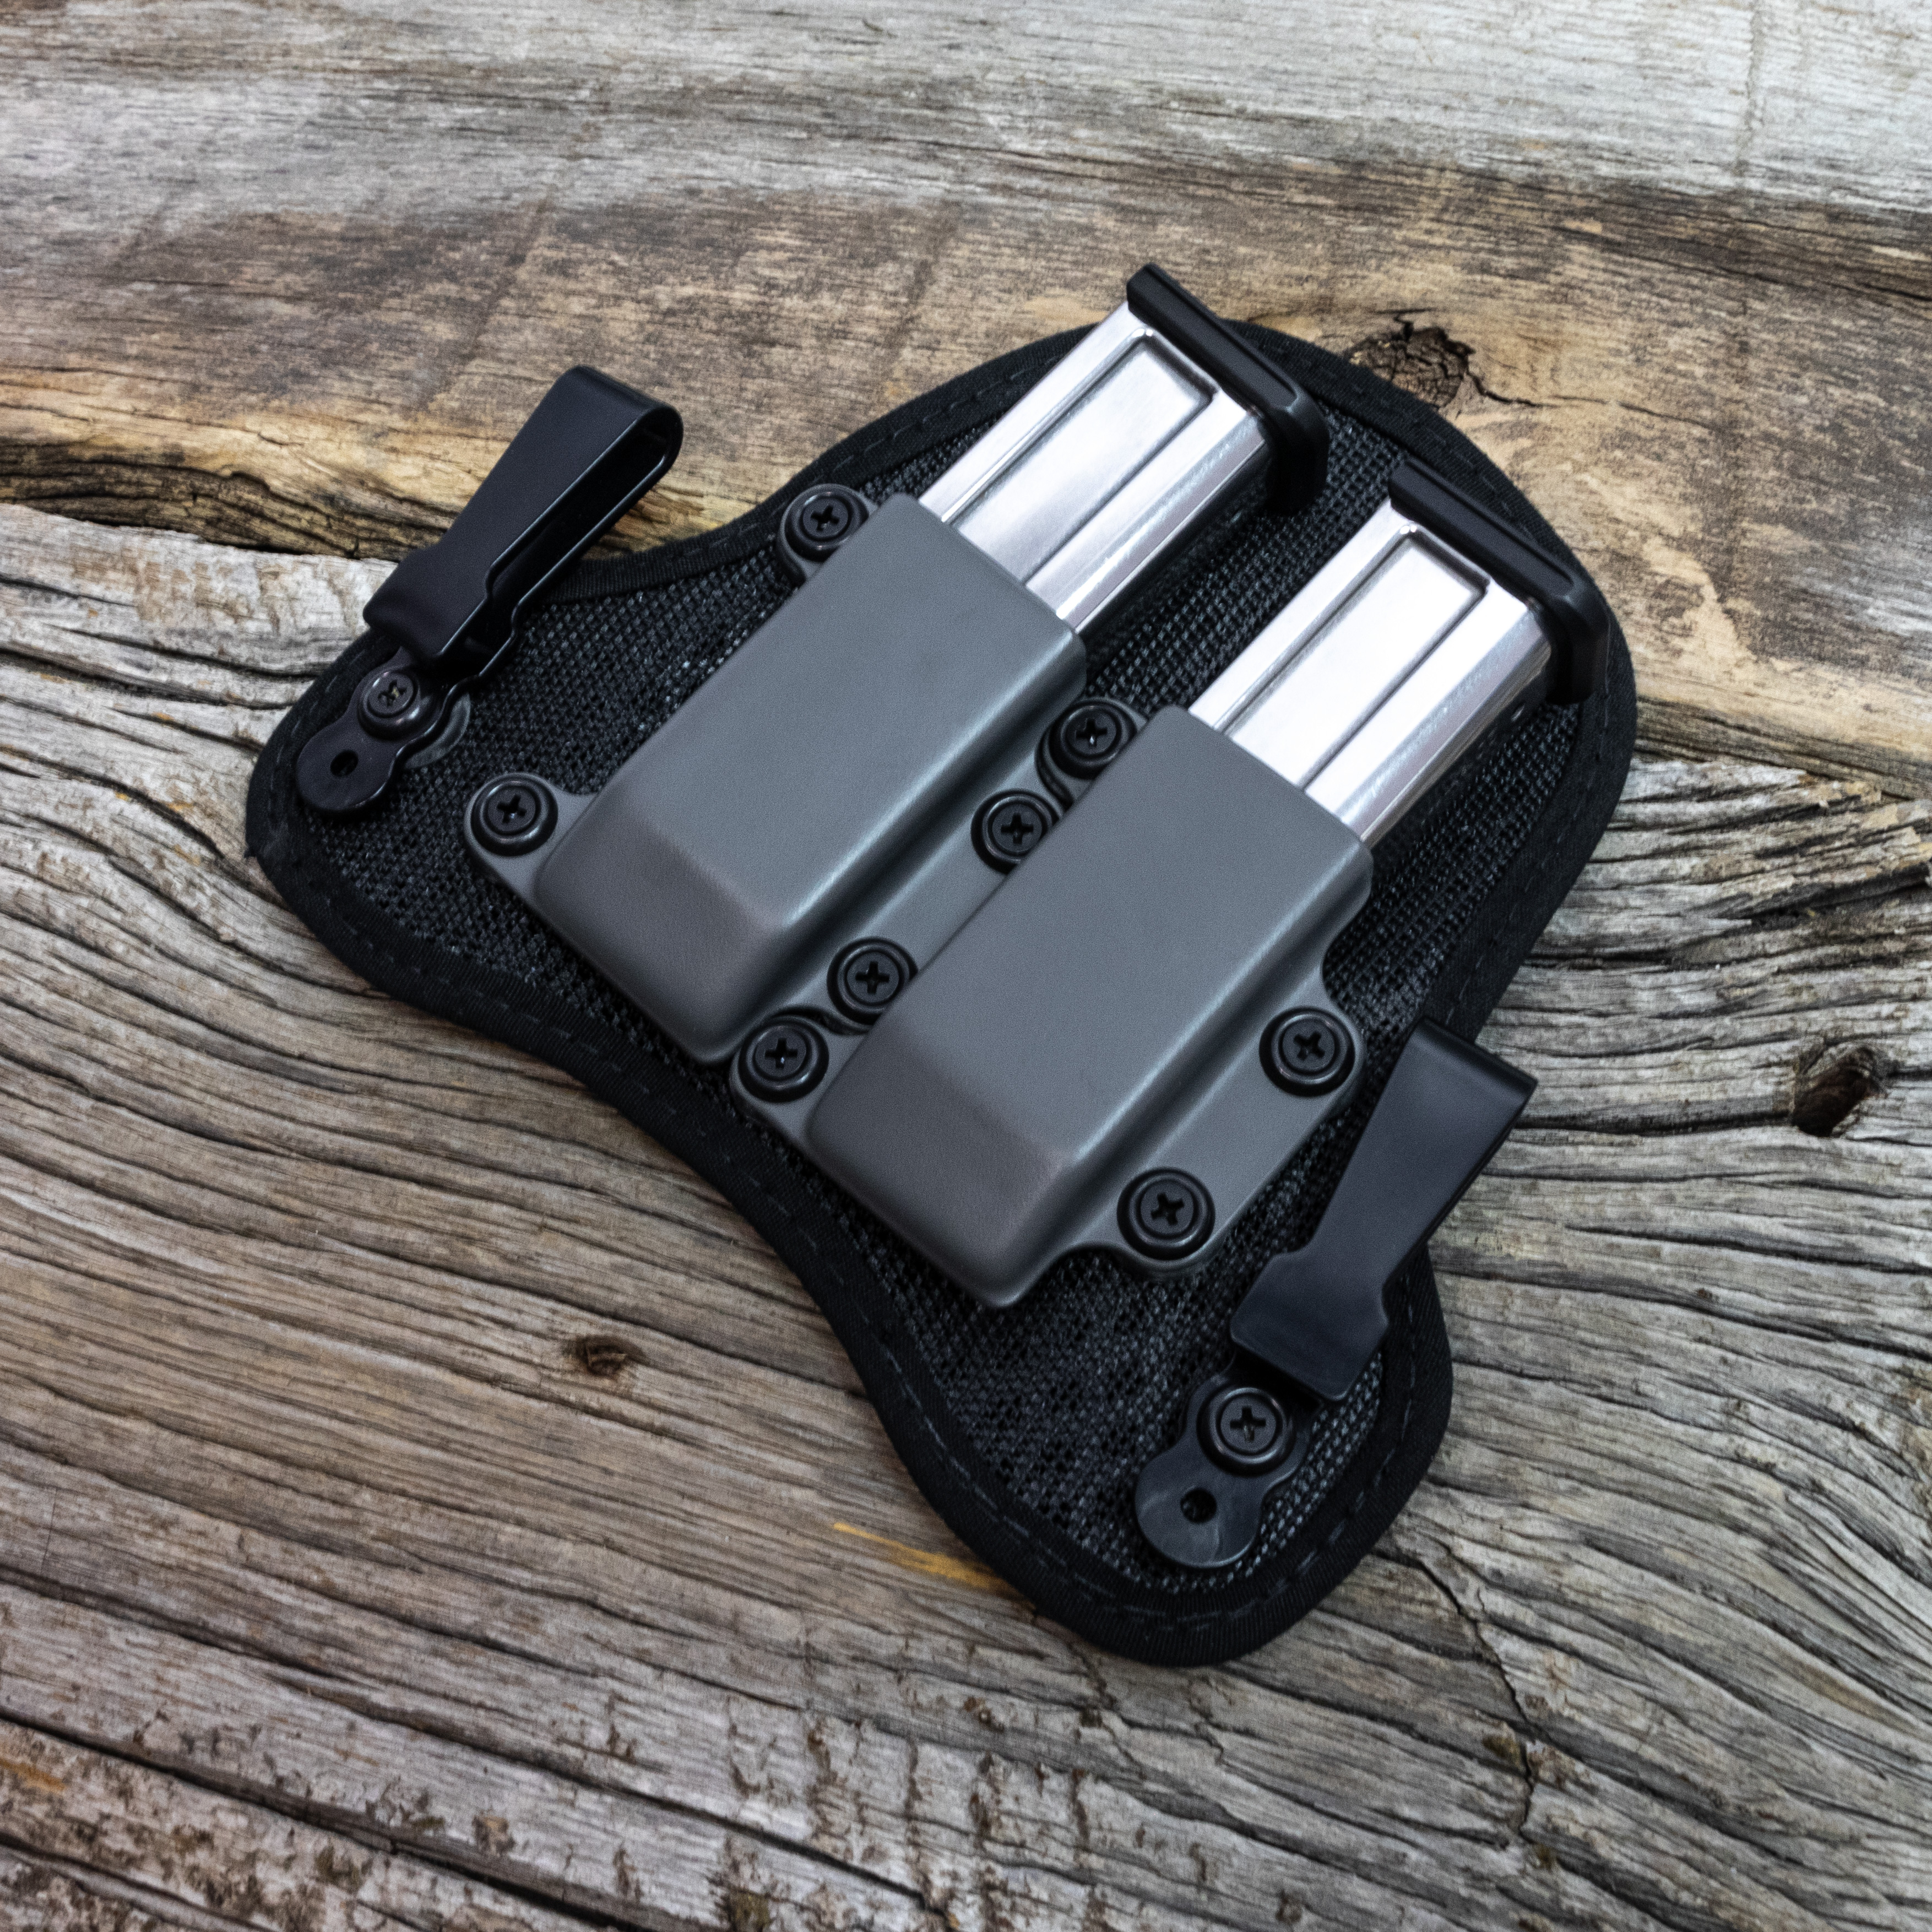 stealthgearusa-ventcore-iwb-double-mag-carrier-loaded-20210421-three-quarter-plank-shot.jpg